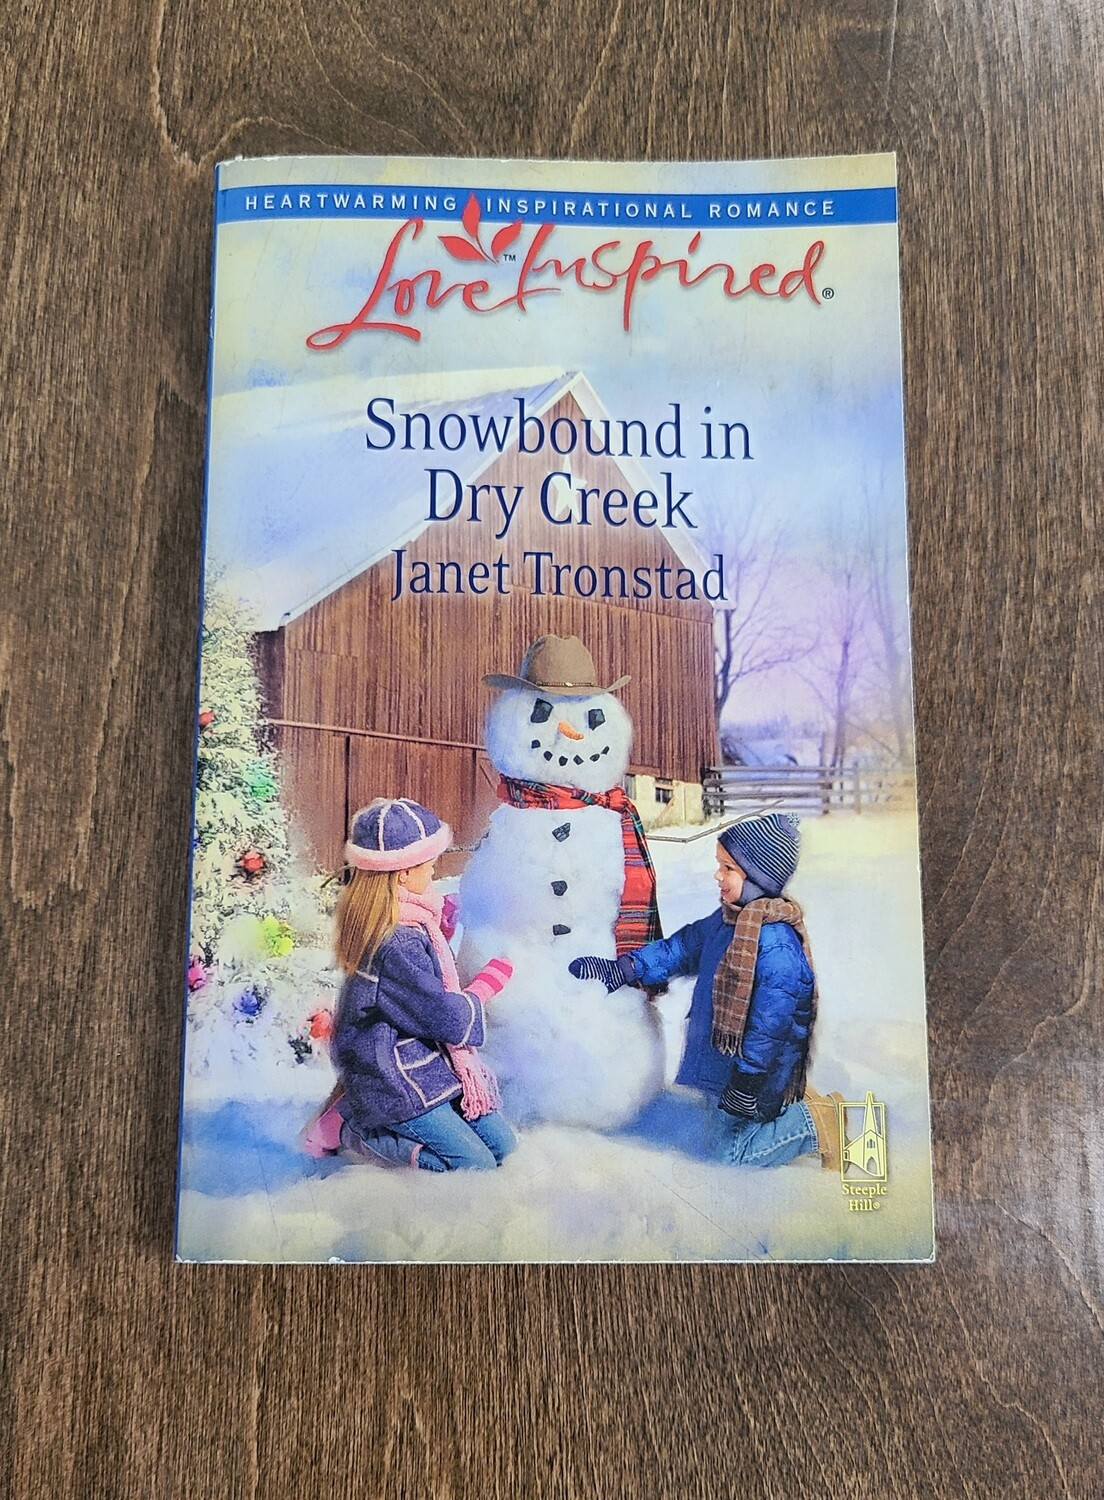 Snowbound in Dry Creek by Janet Tronstad